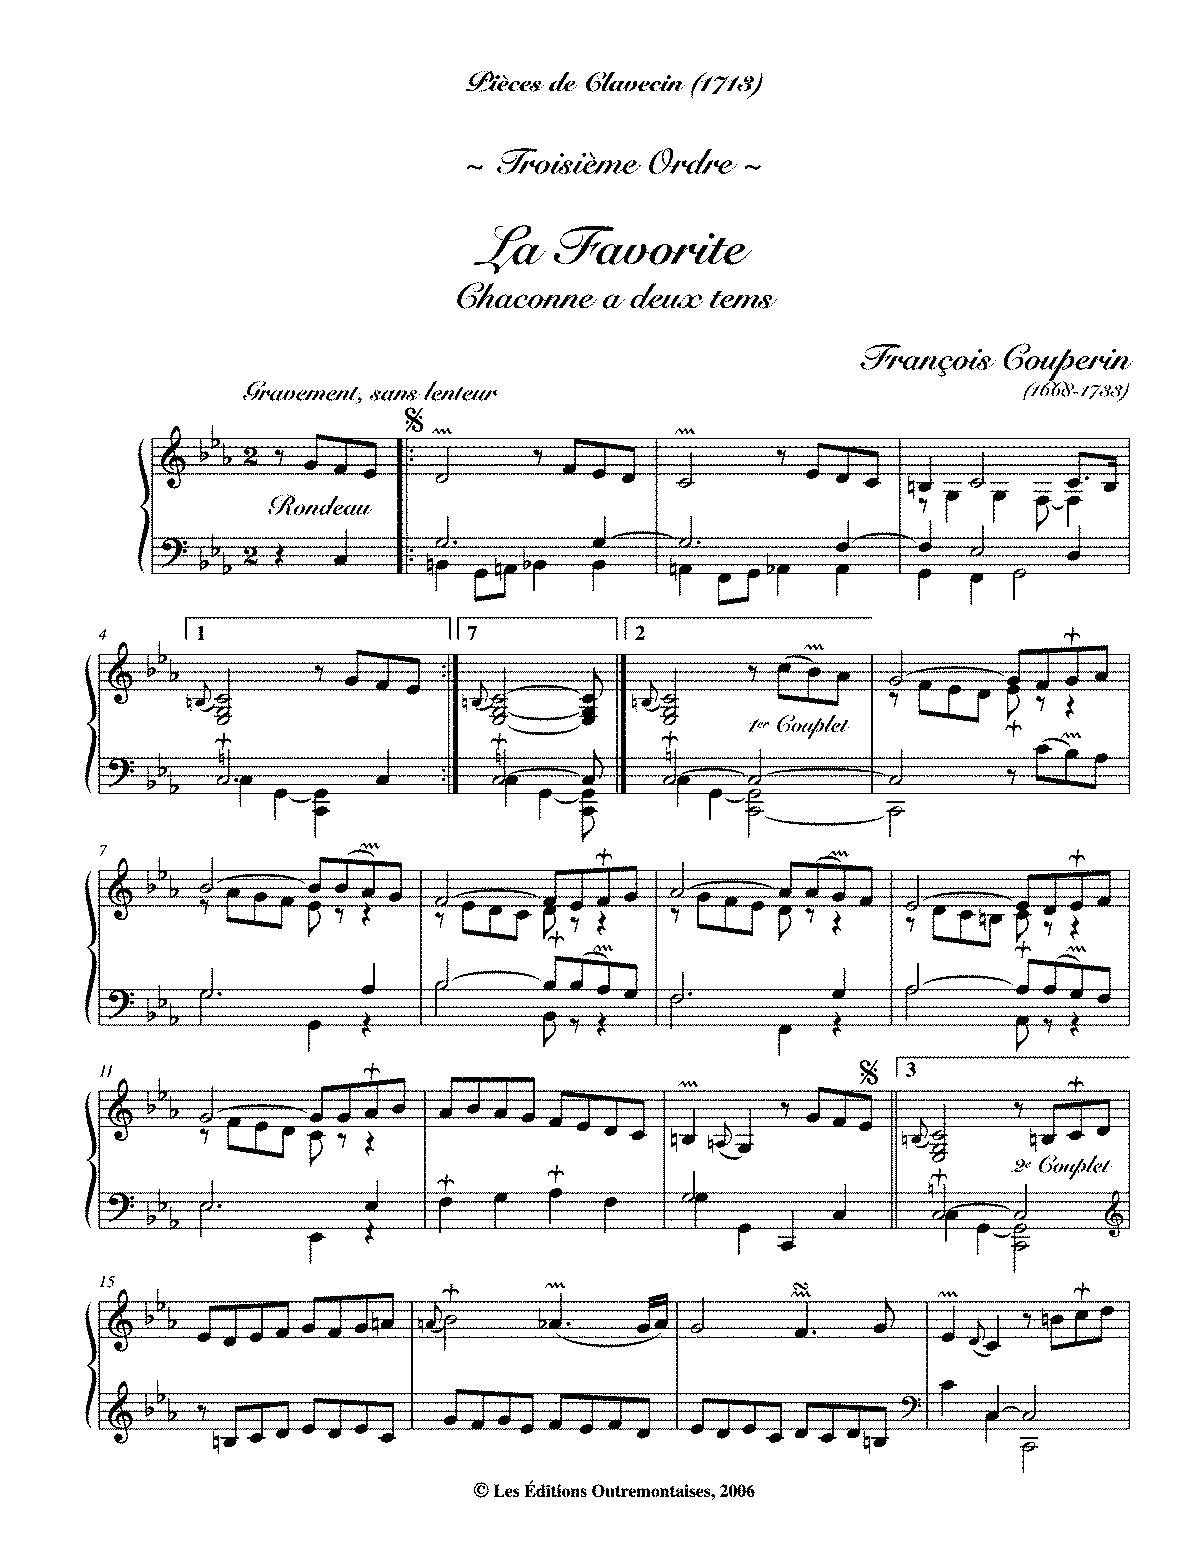 WIMA.d1cd-Couperin 3eO 12 La Favorite.pdf